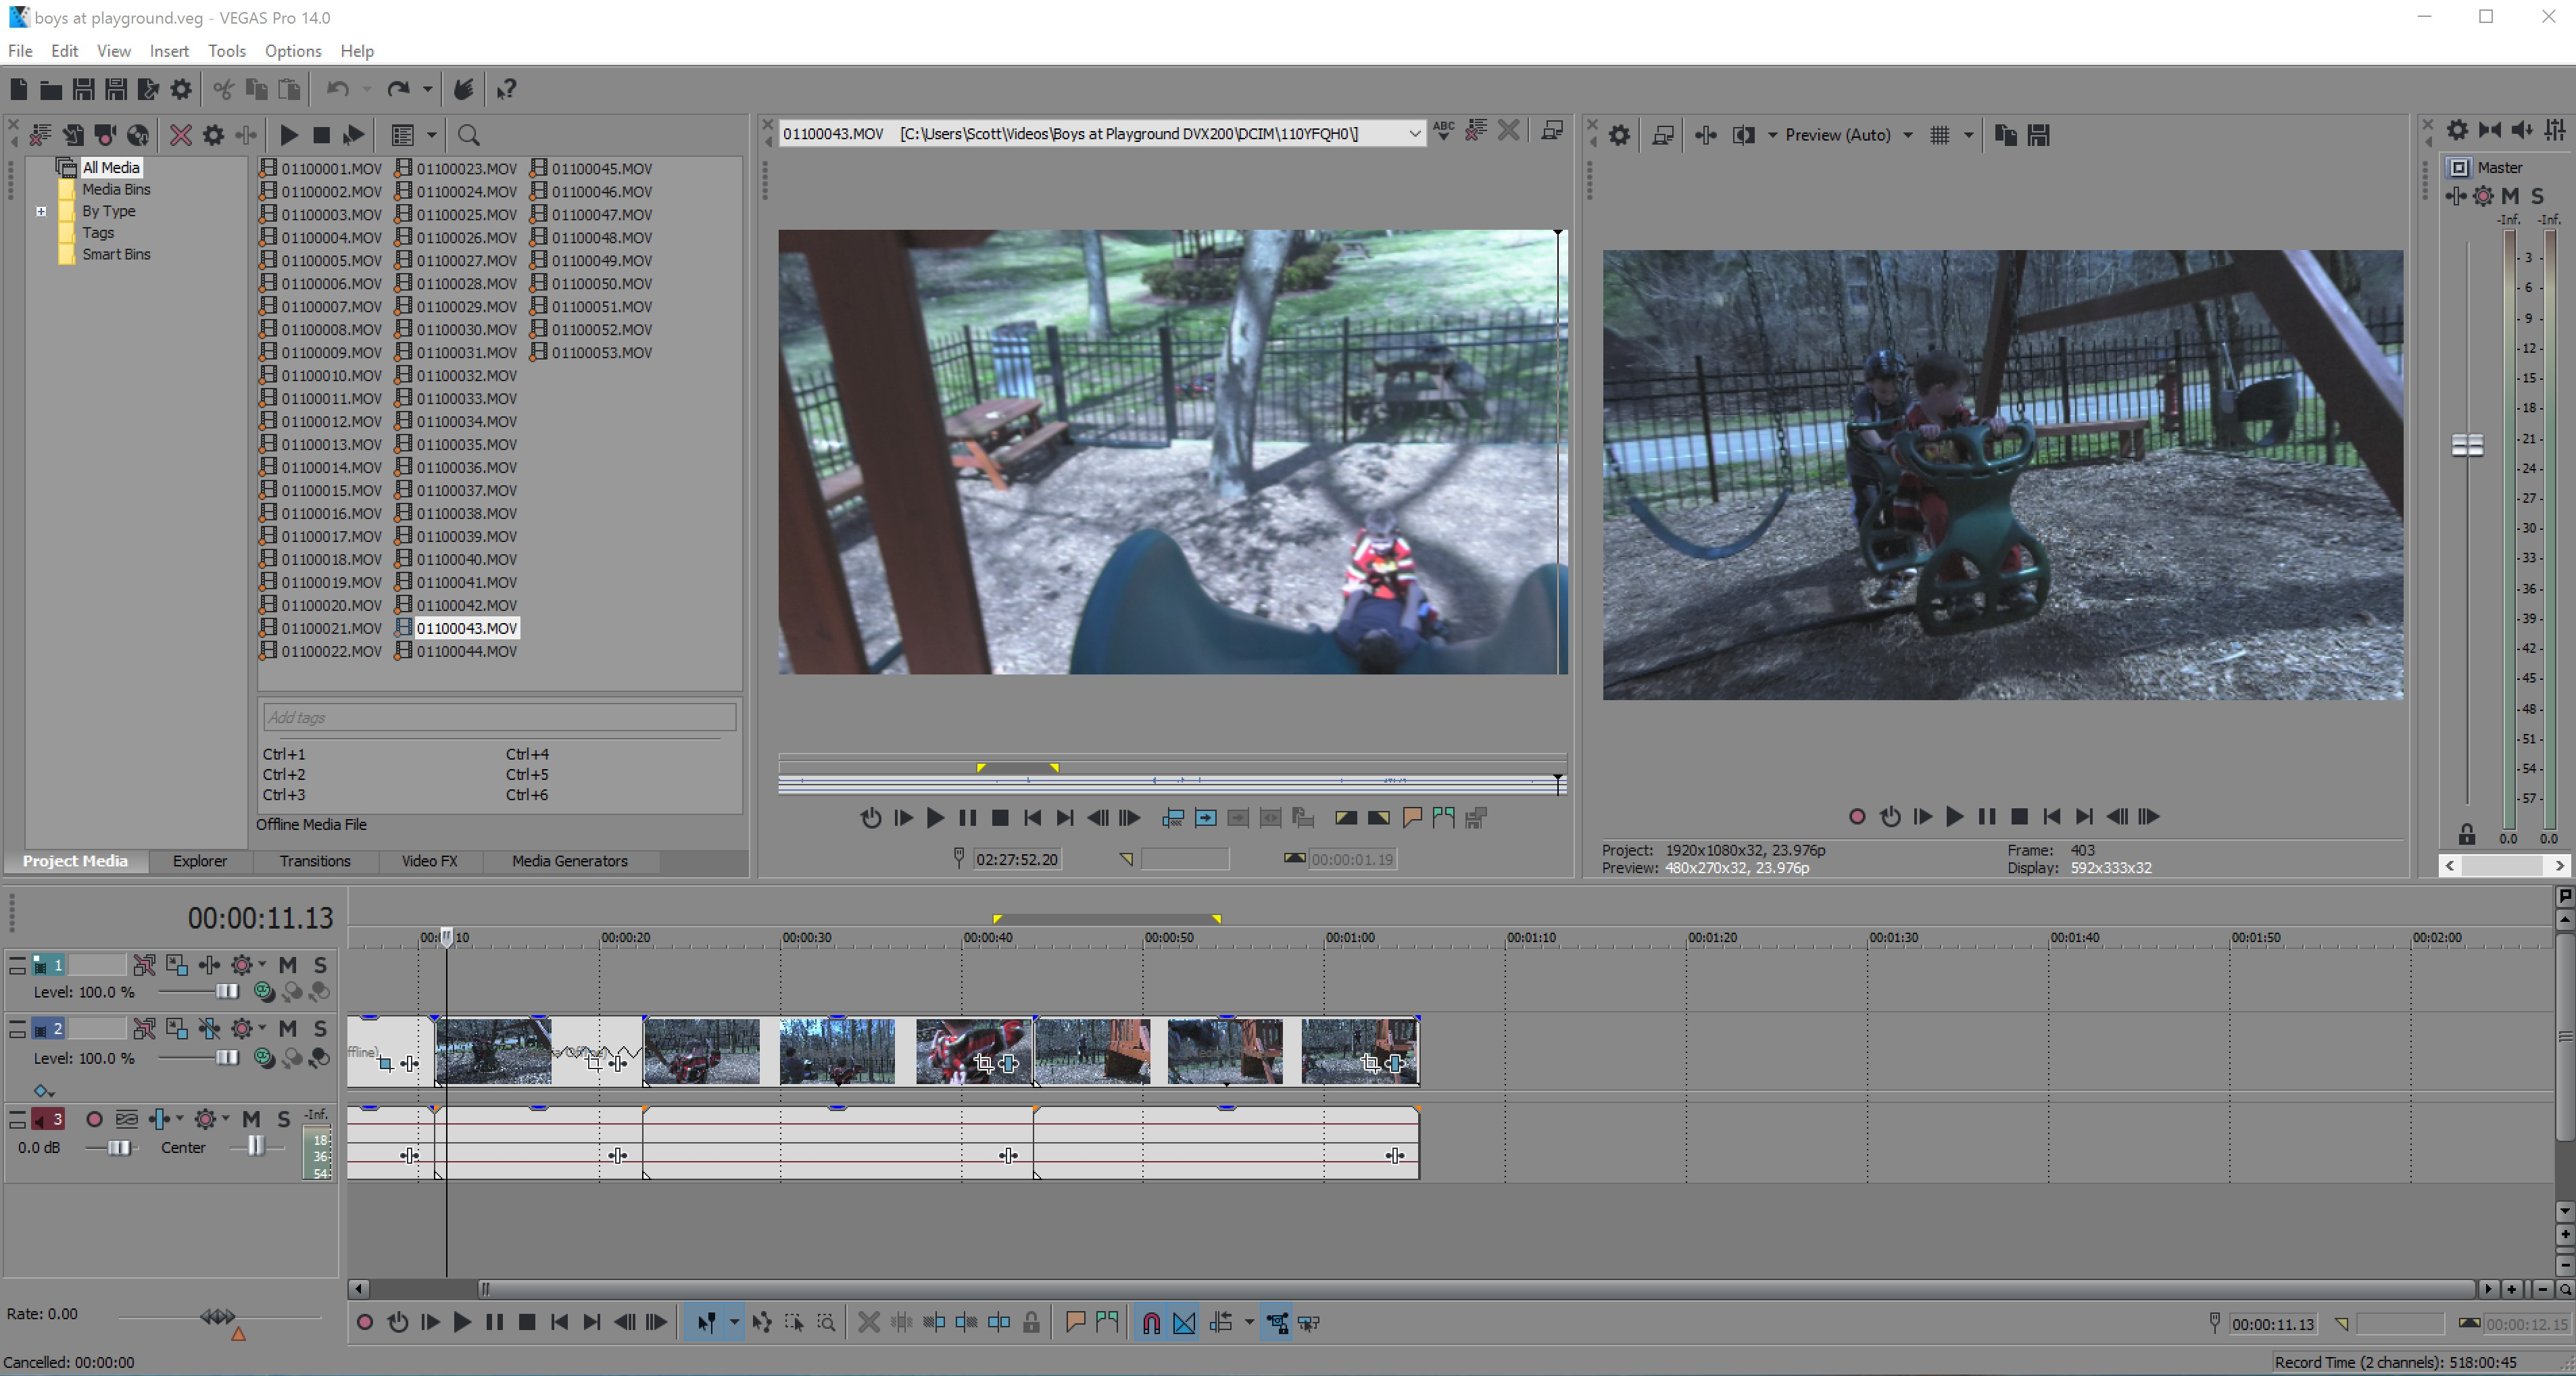 An in-depth discussion about Magix VEGAS Pro by Scott Simmons